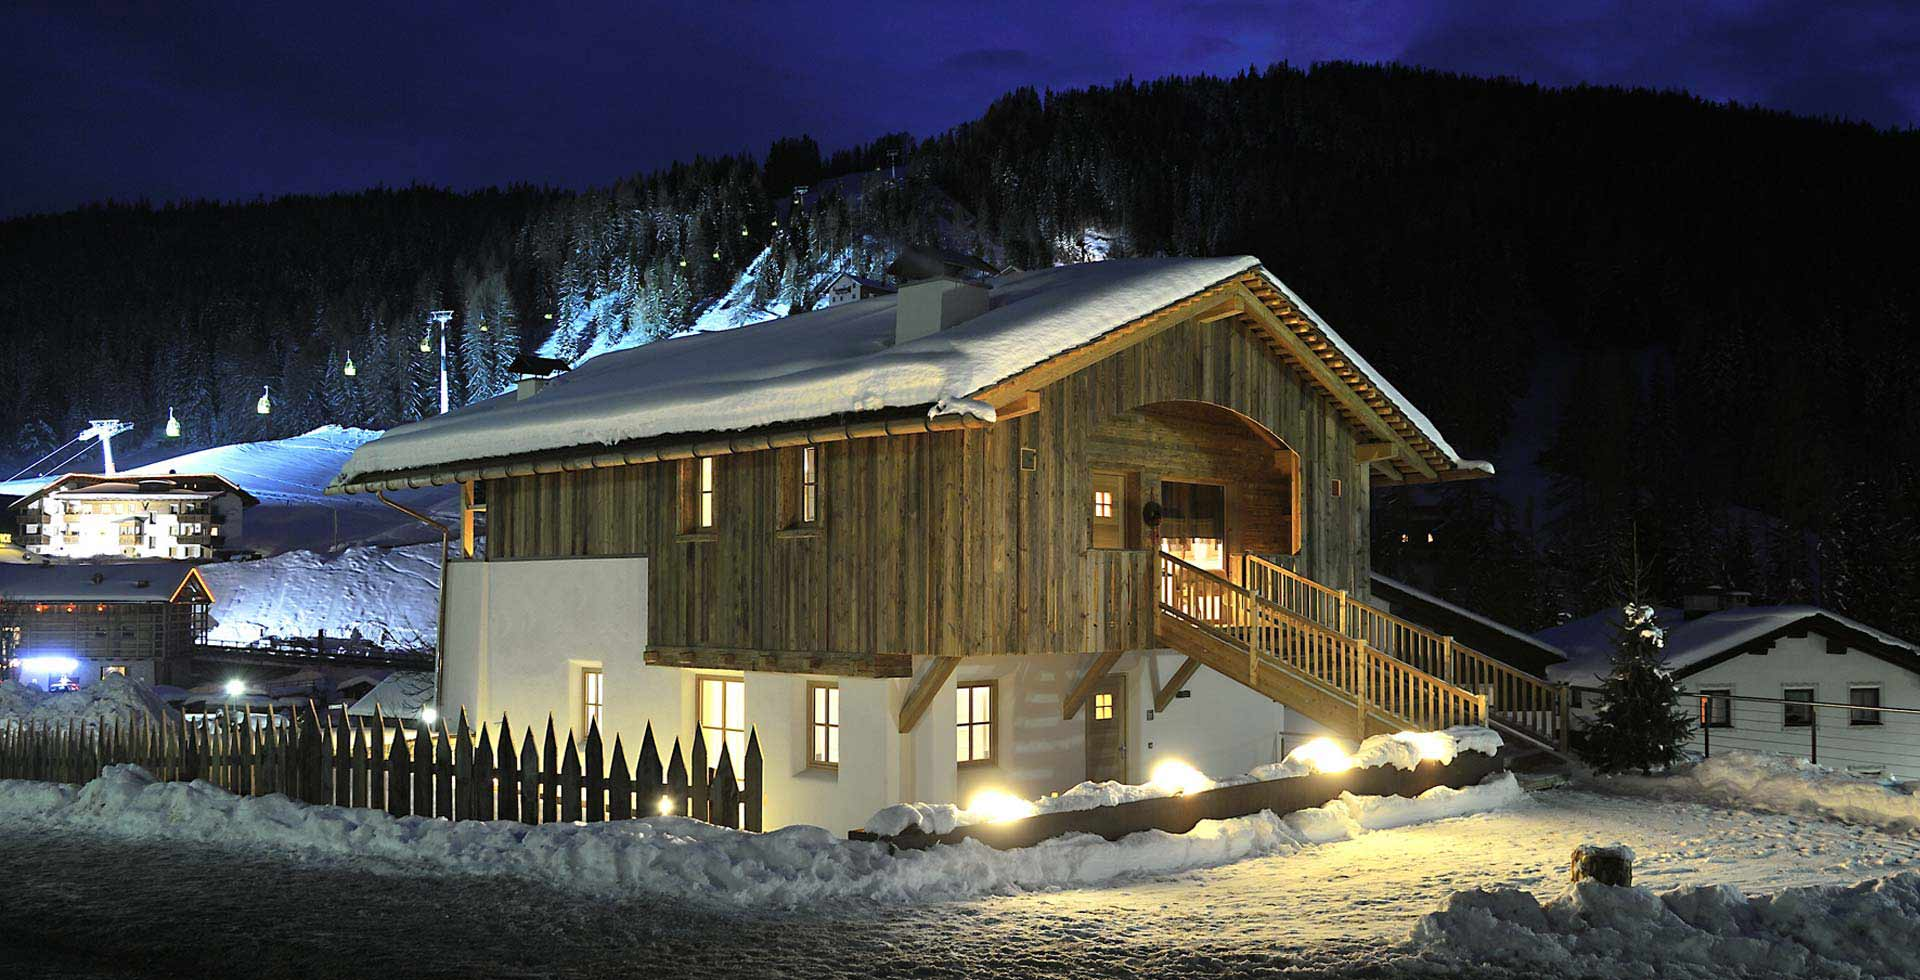 Chalet very close to slopes - Dolomites Chalet